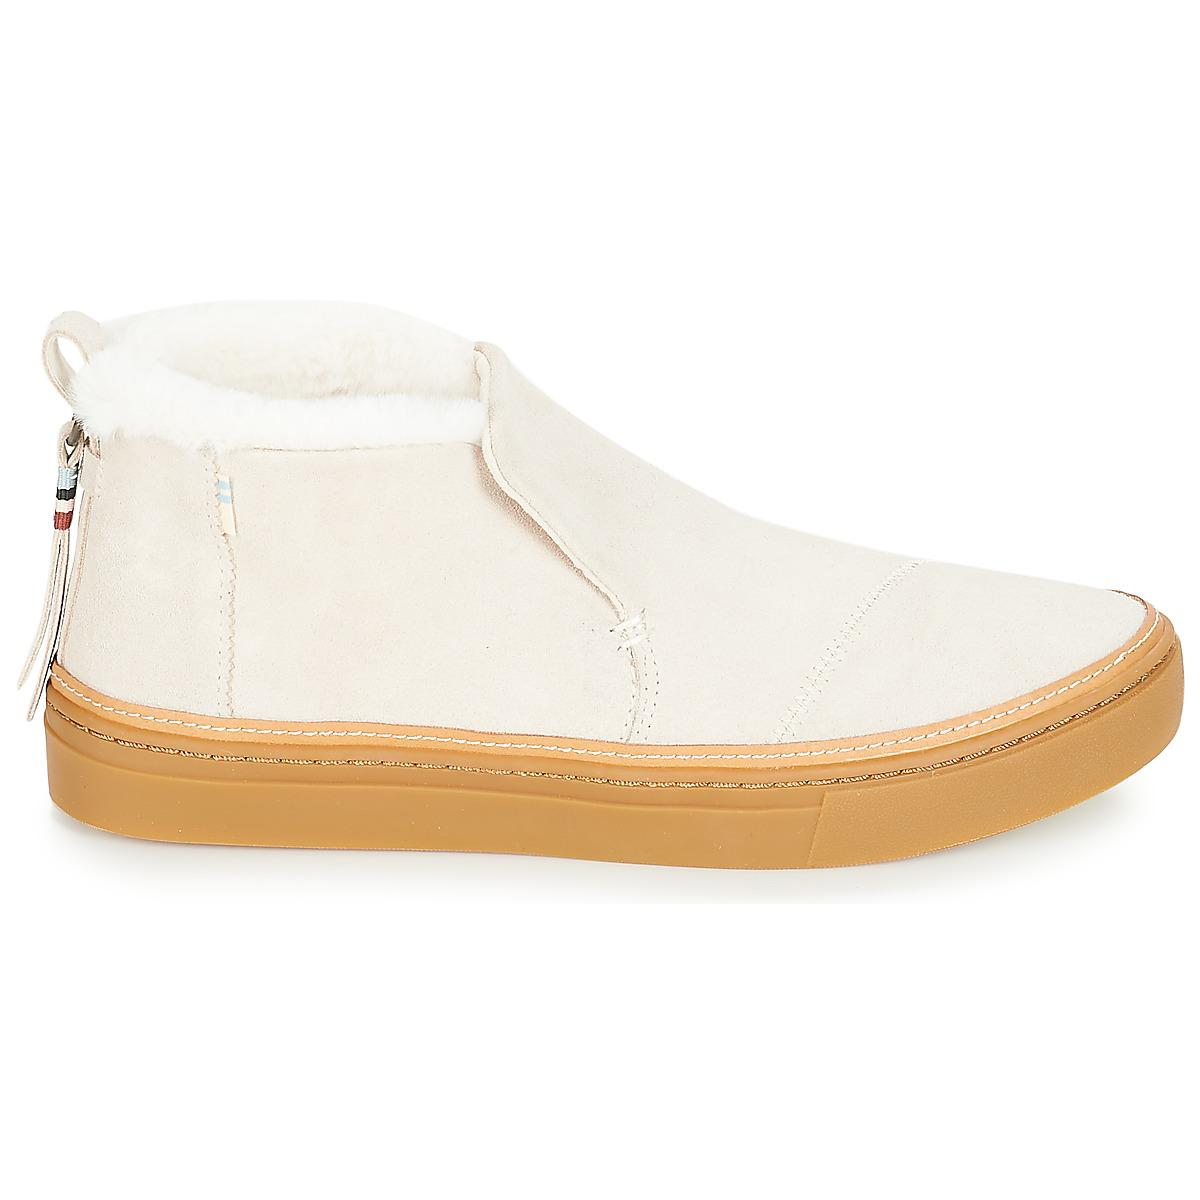 cb7512c9c9e TOMS Paxton Slip-ons (shoes) in Natural - Lyst